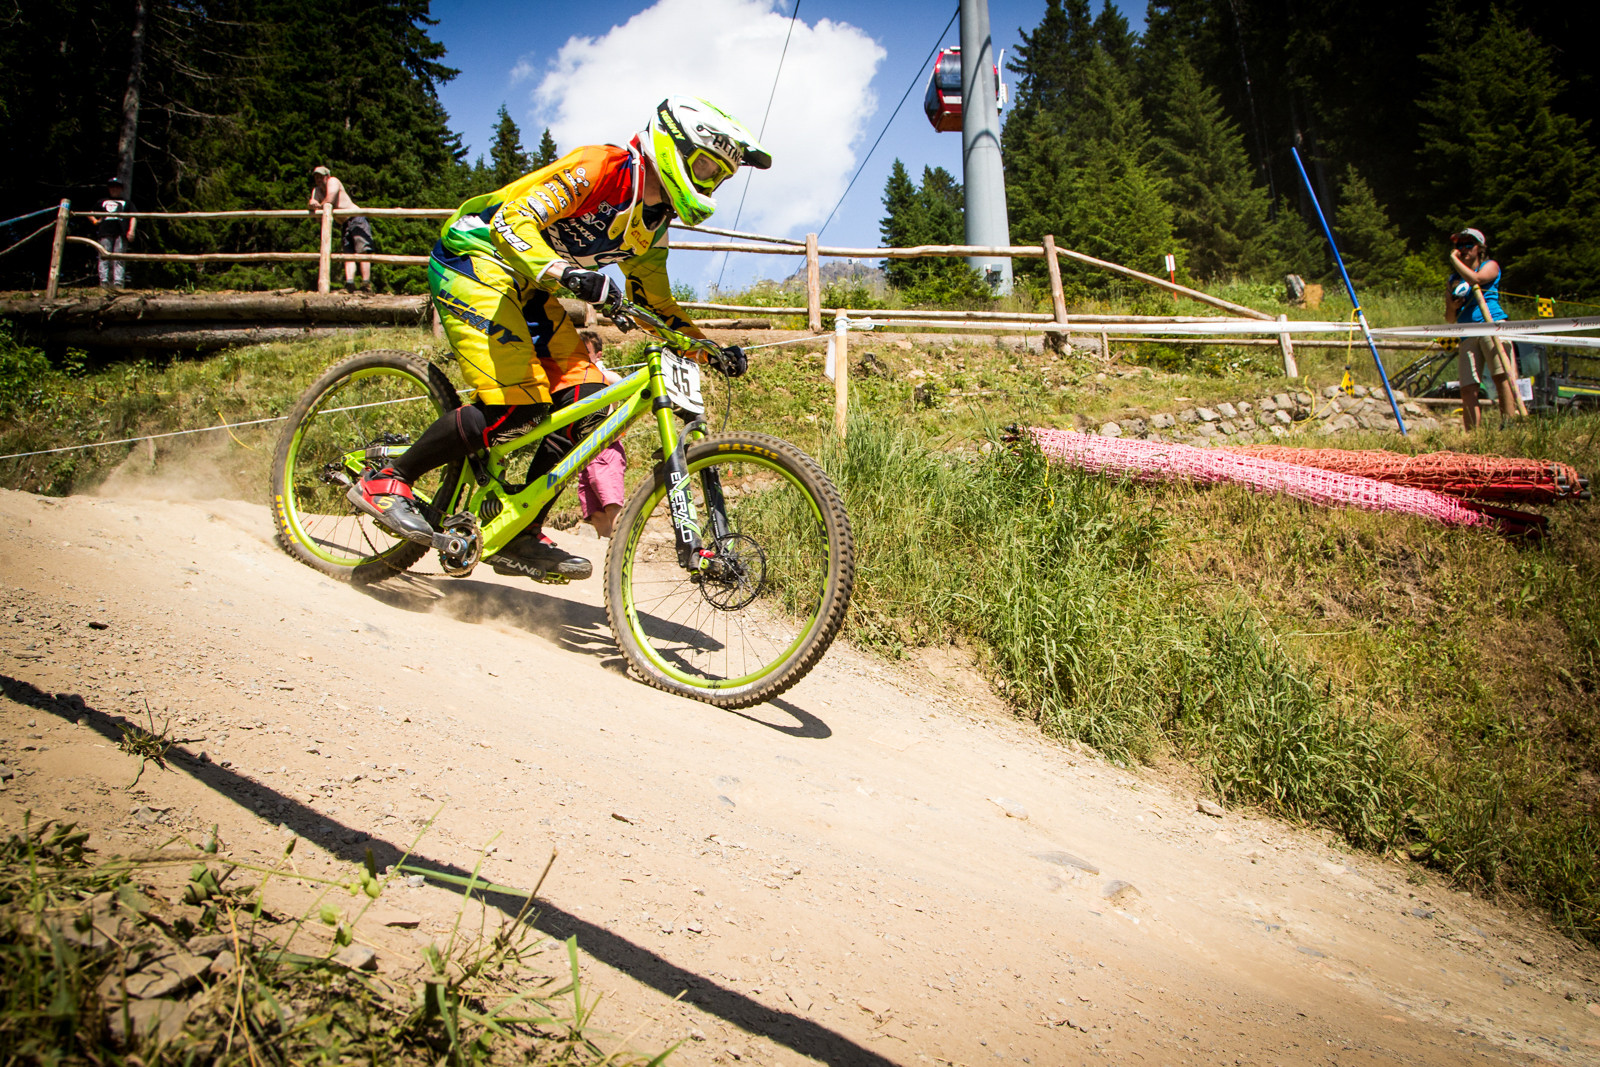 G-Out Project, Lenzerheide World Cup, Banshee - G-Out Project - Lenzerheide World Cup - Mountain Biking Pictures - Vital MTB